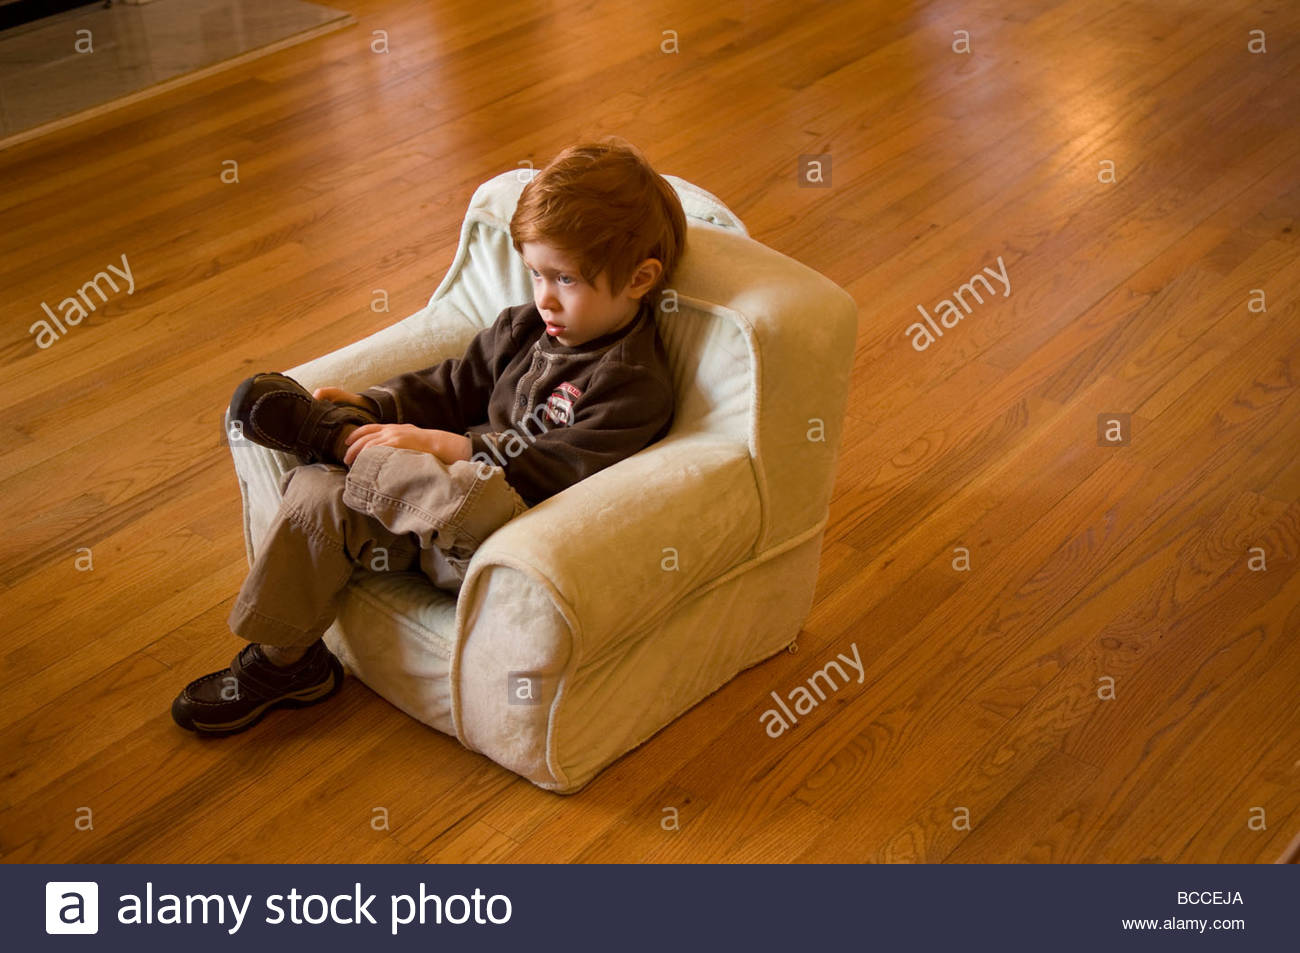 A 3 Year Old Boy Watches Tv In His Child Size Armchair Stock Photo